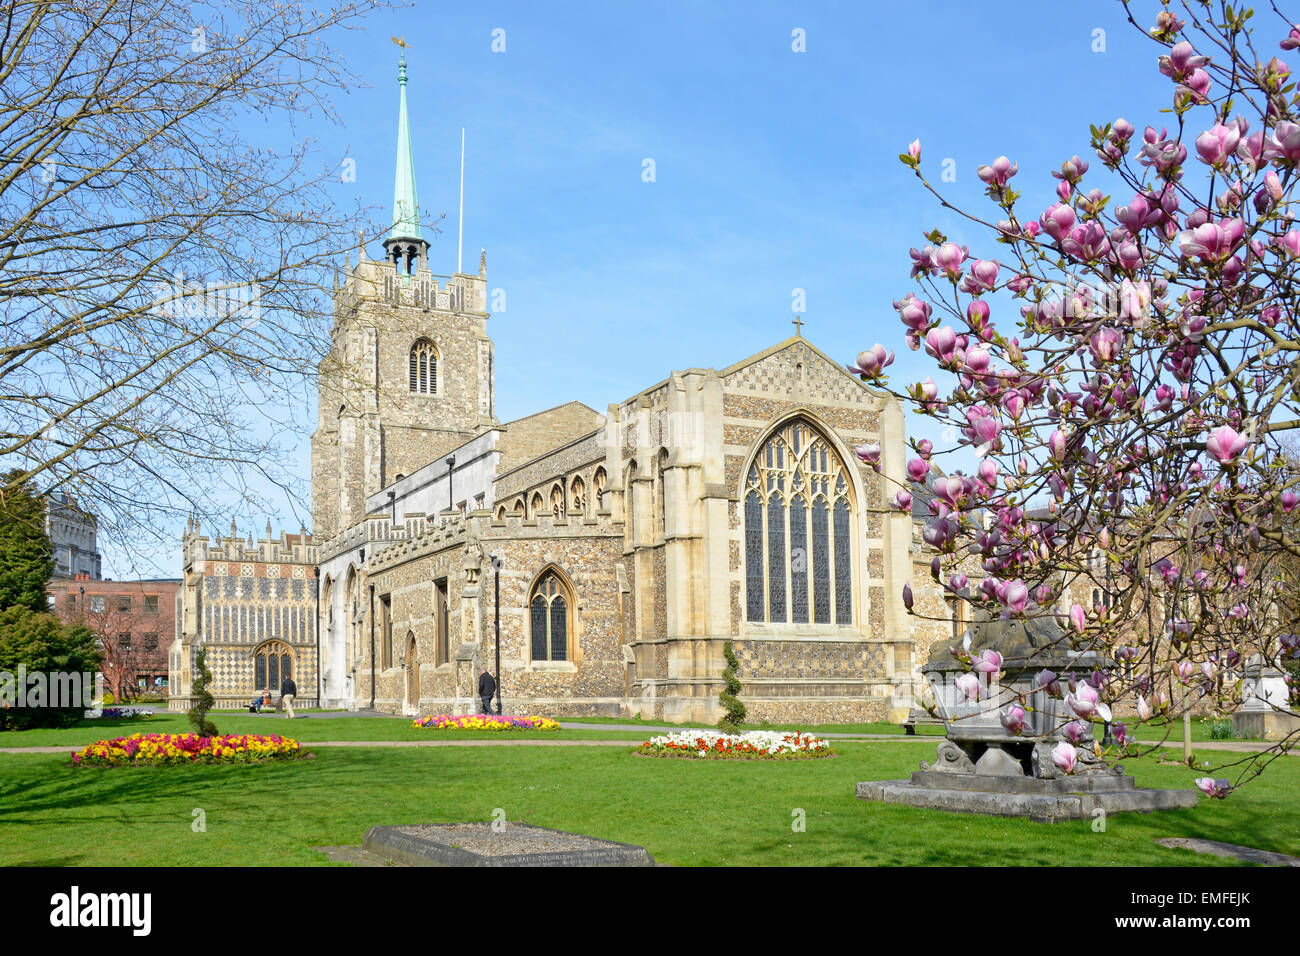 Chelmsford Church of England Cathedral and churchyard Essex England UK - Stock Image